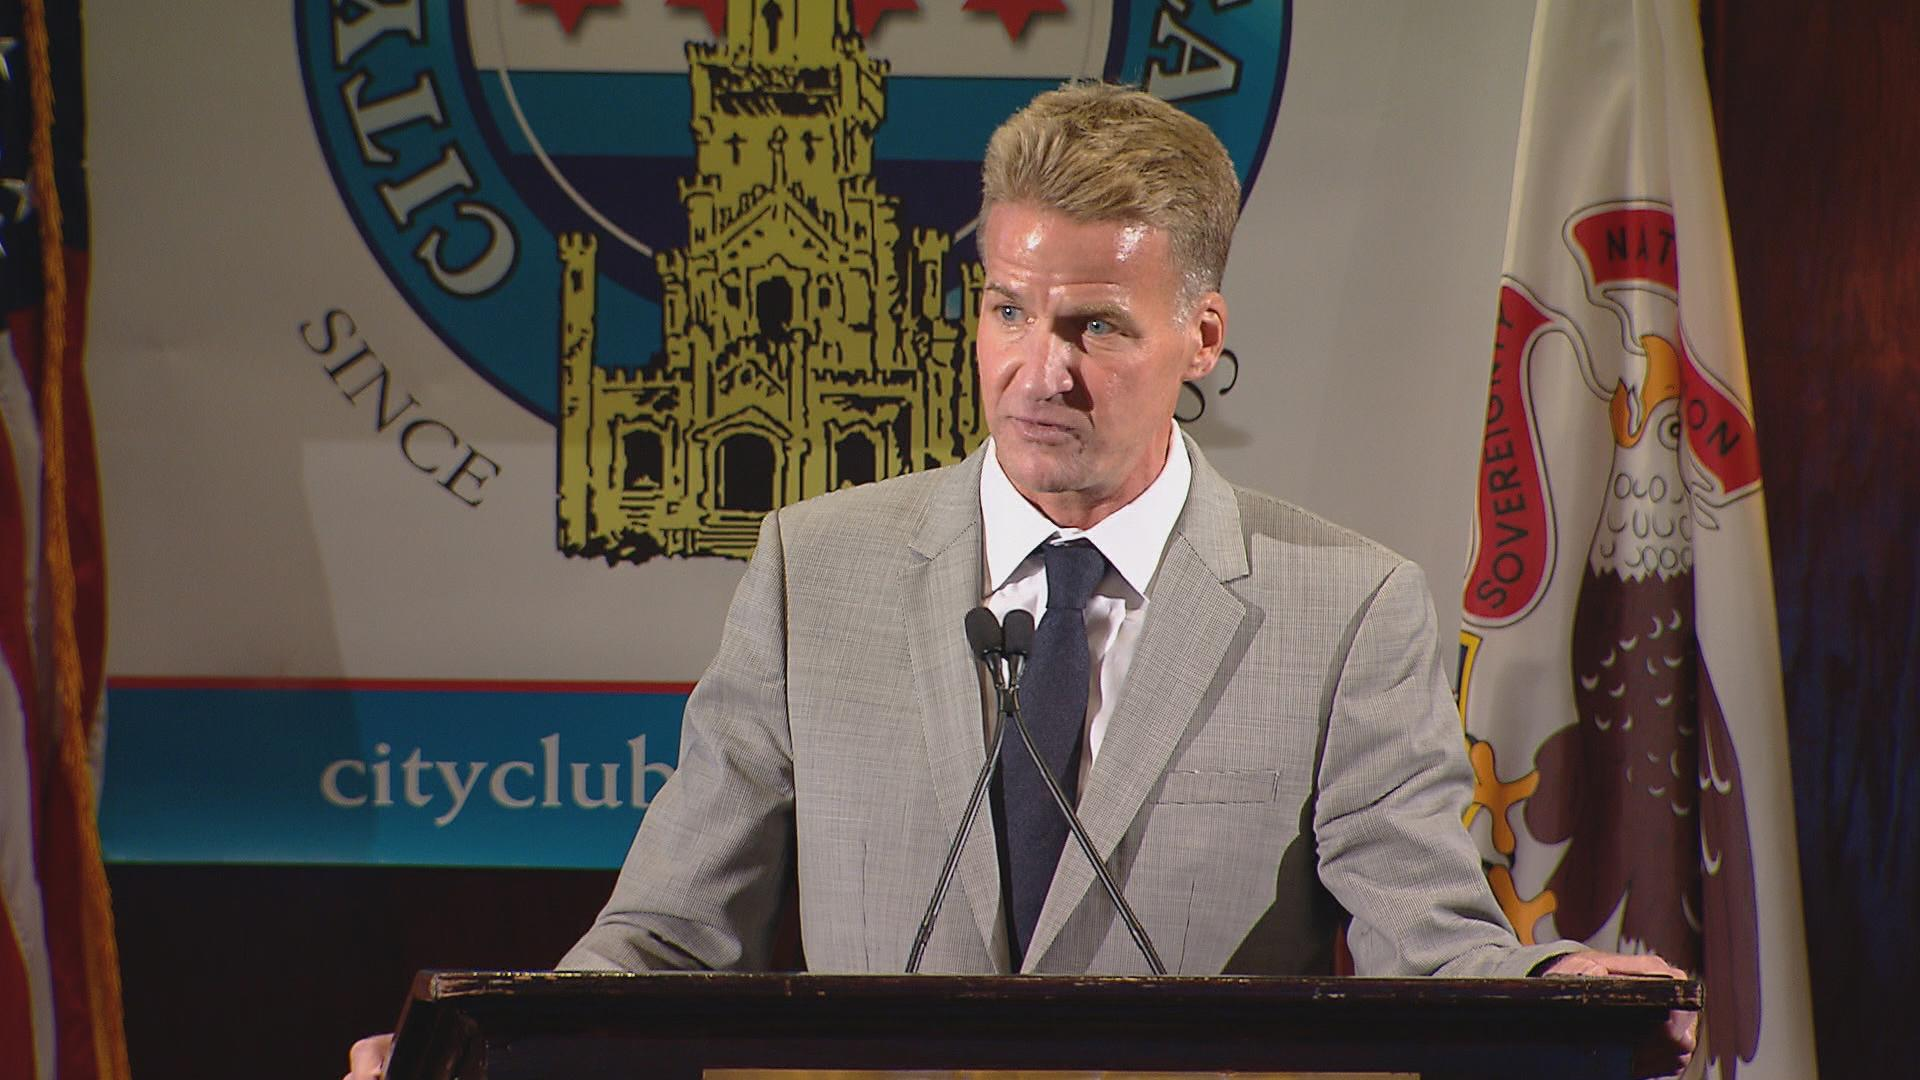 U.S. Attorney Zachary Fardon speaks at the City Club of Chicago on Sept. 26, 2016. (Chicago Tonight)